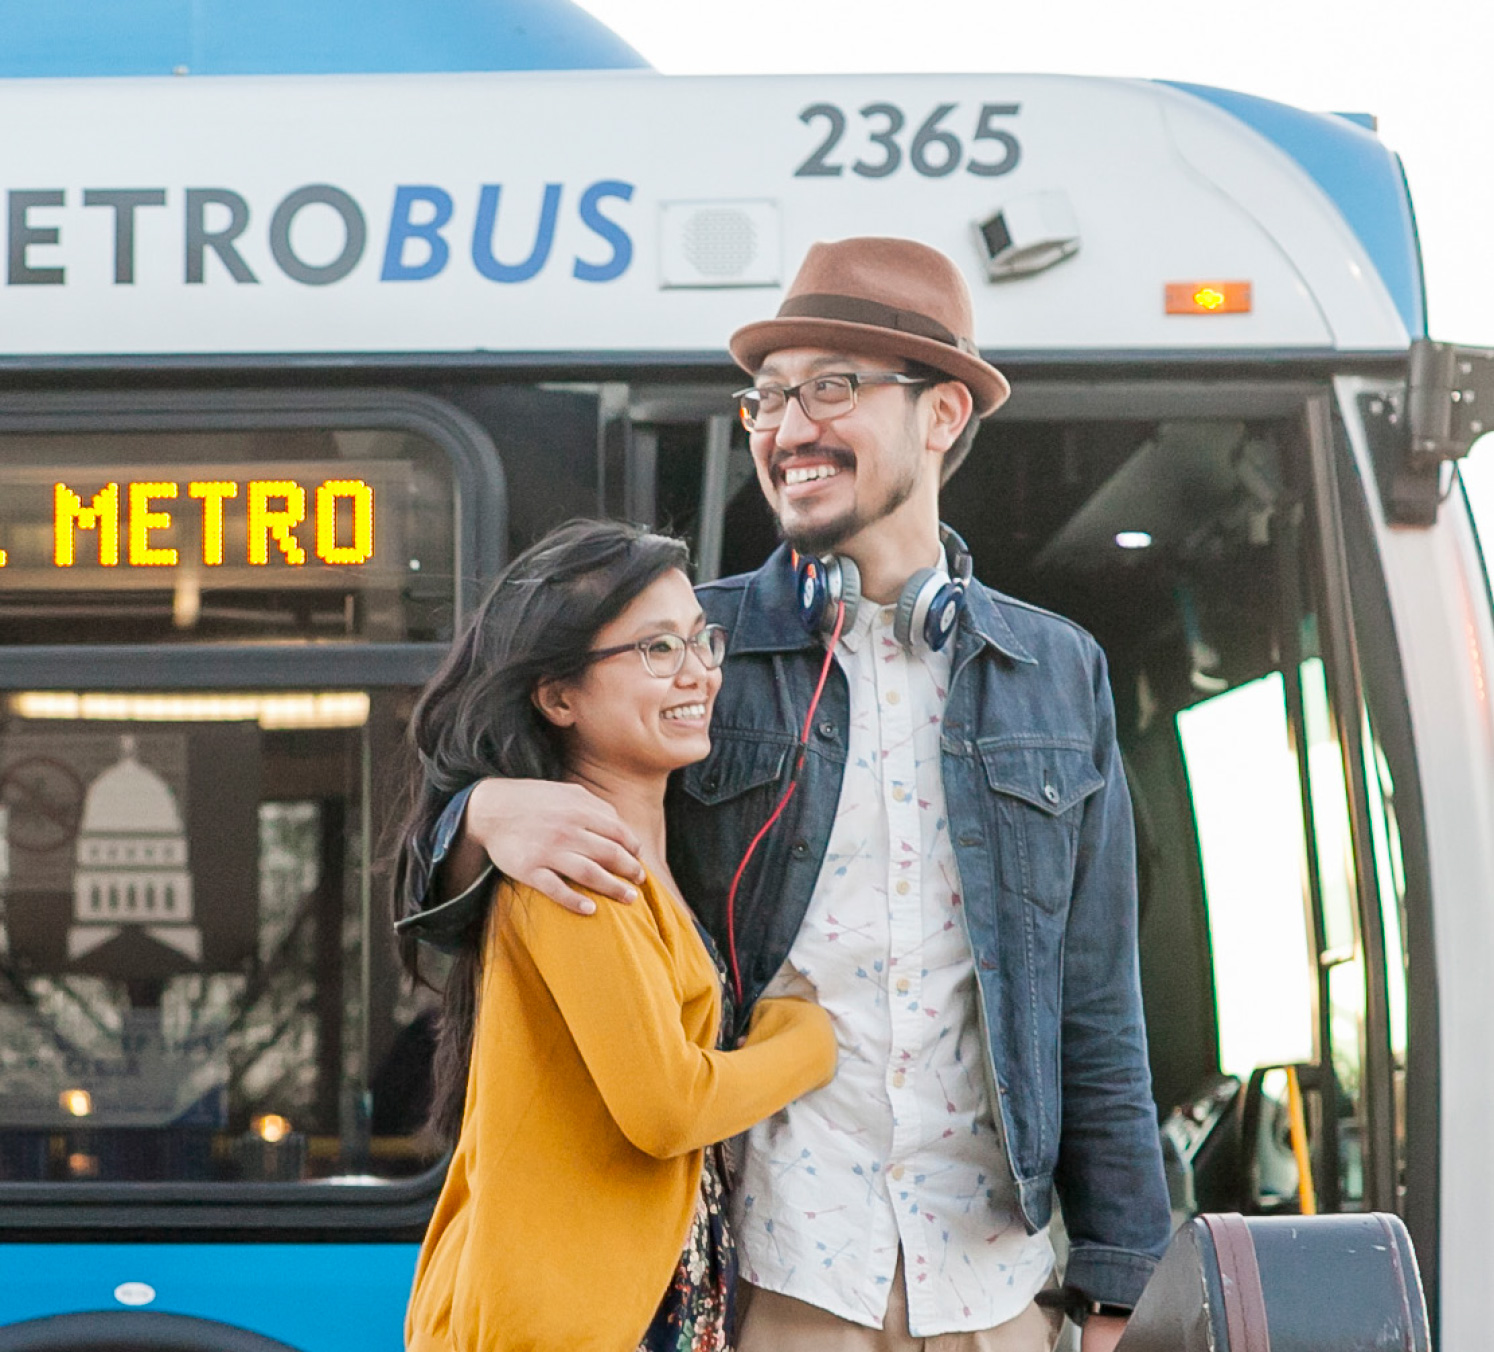 Image of a Happy Couple standing in front of a Capital Metro Bus